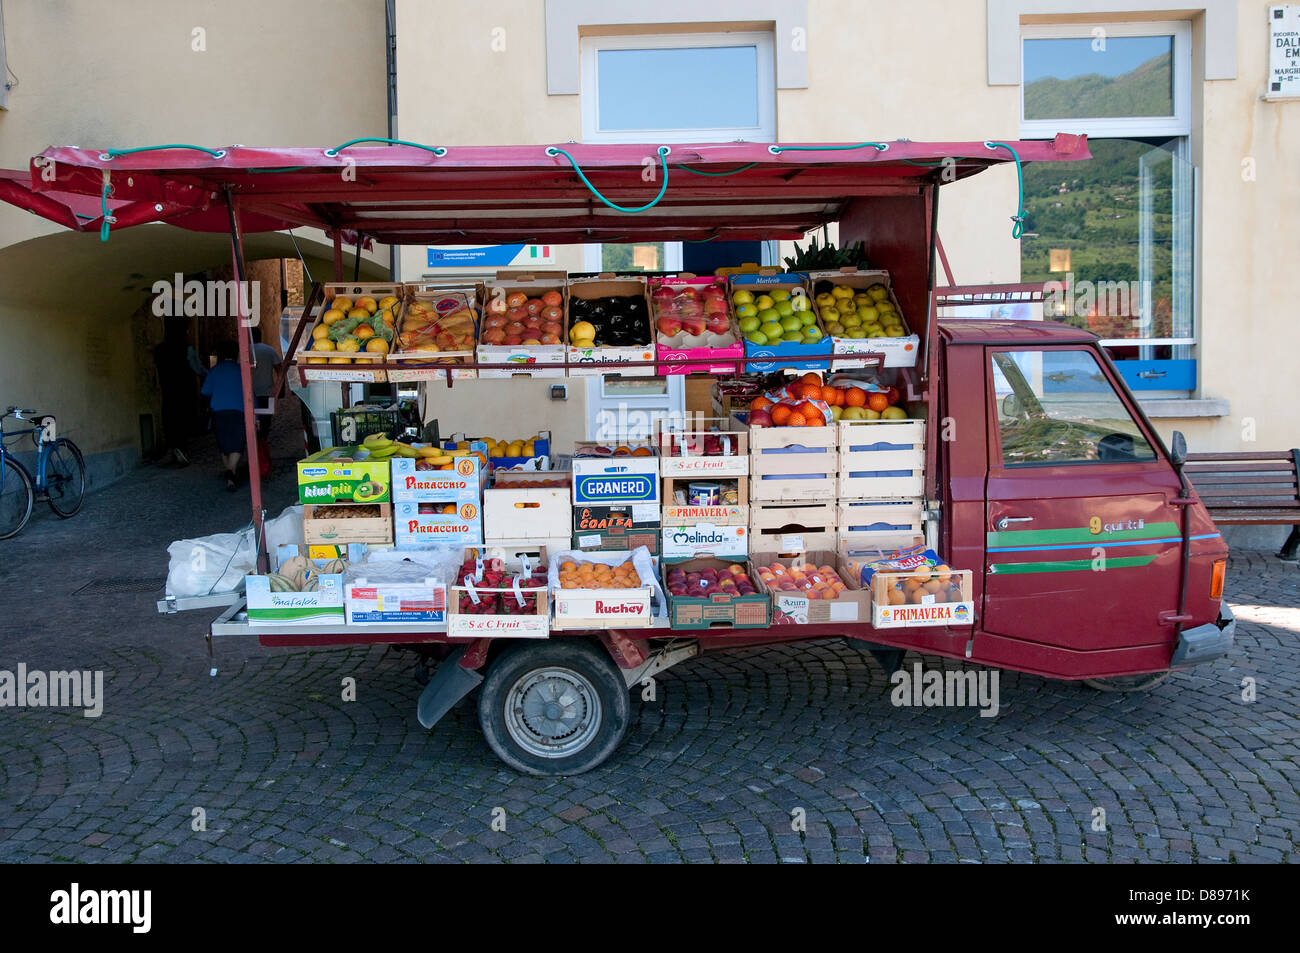 fruit and vegetable truck, peschiera maraglio, monte isola, lake iseo, lombardy, italy - Stock Image